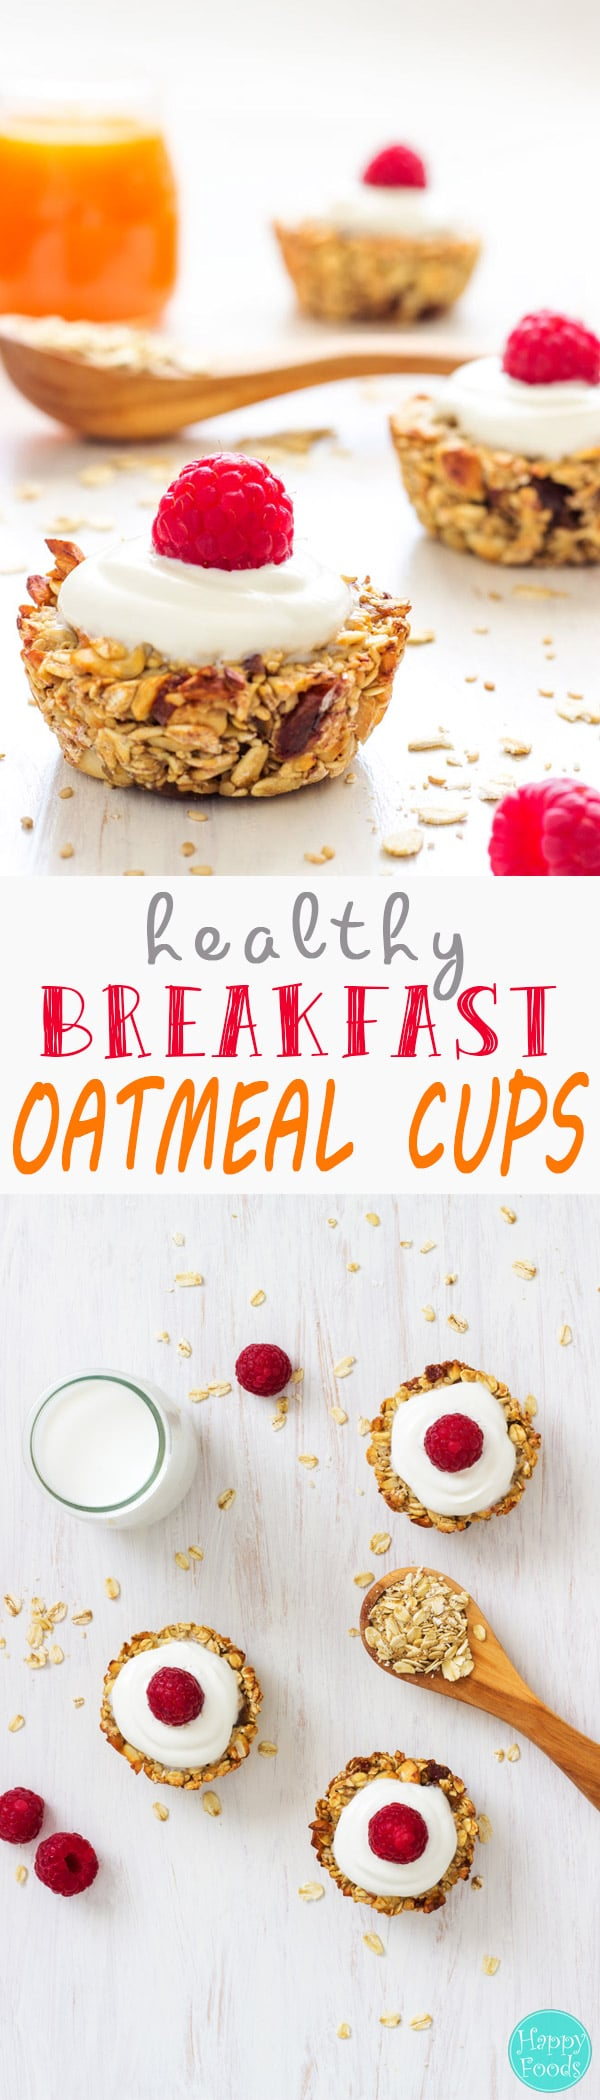 Start your day with these easy to make healthy breakfast oatmeal cups! If you love granola bars, you will also love these little cups packed with nutrients